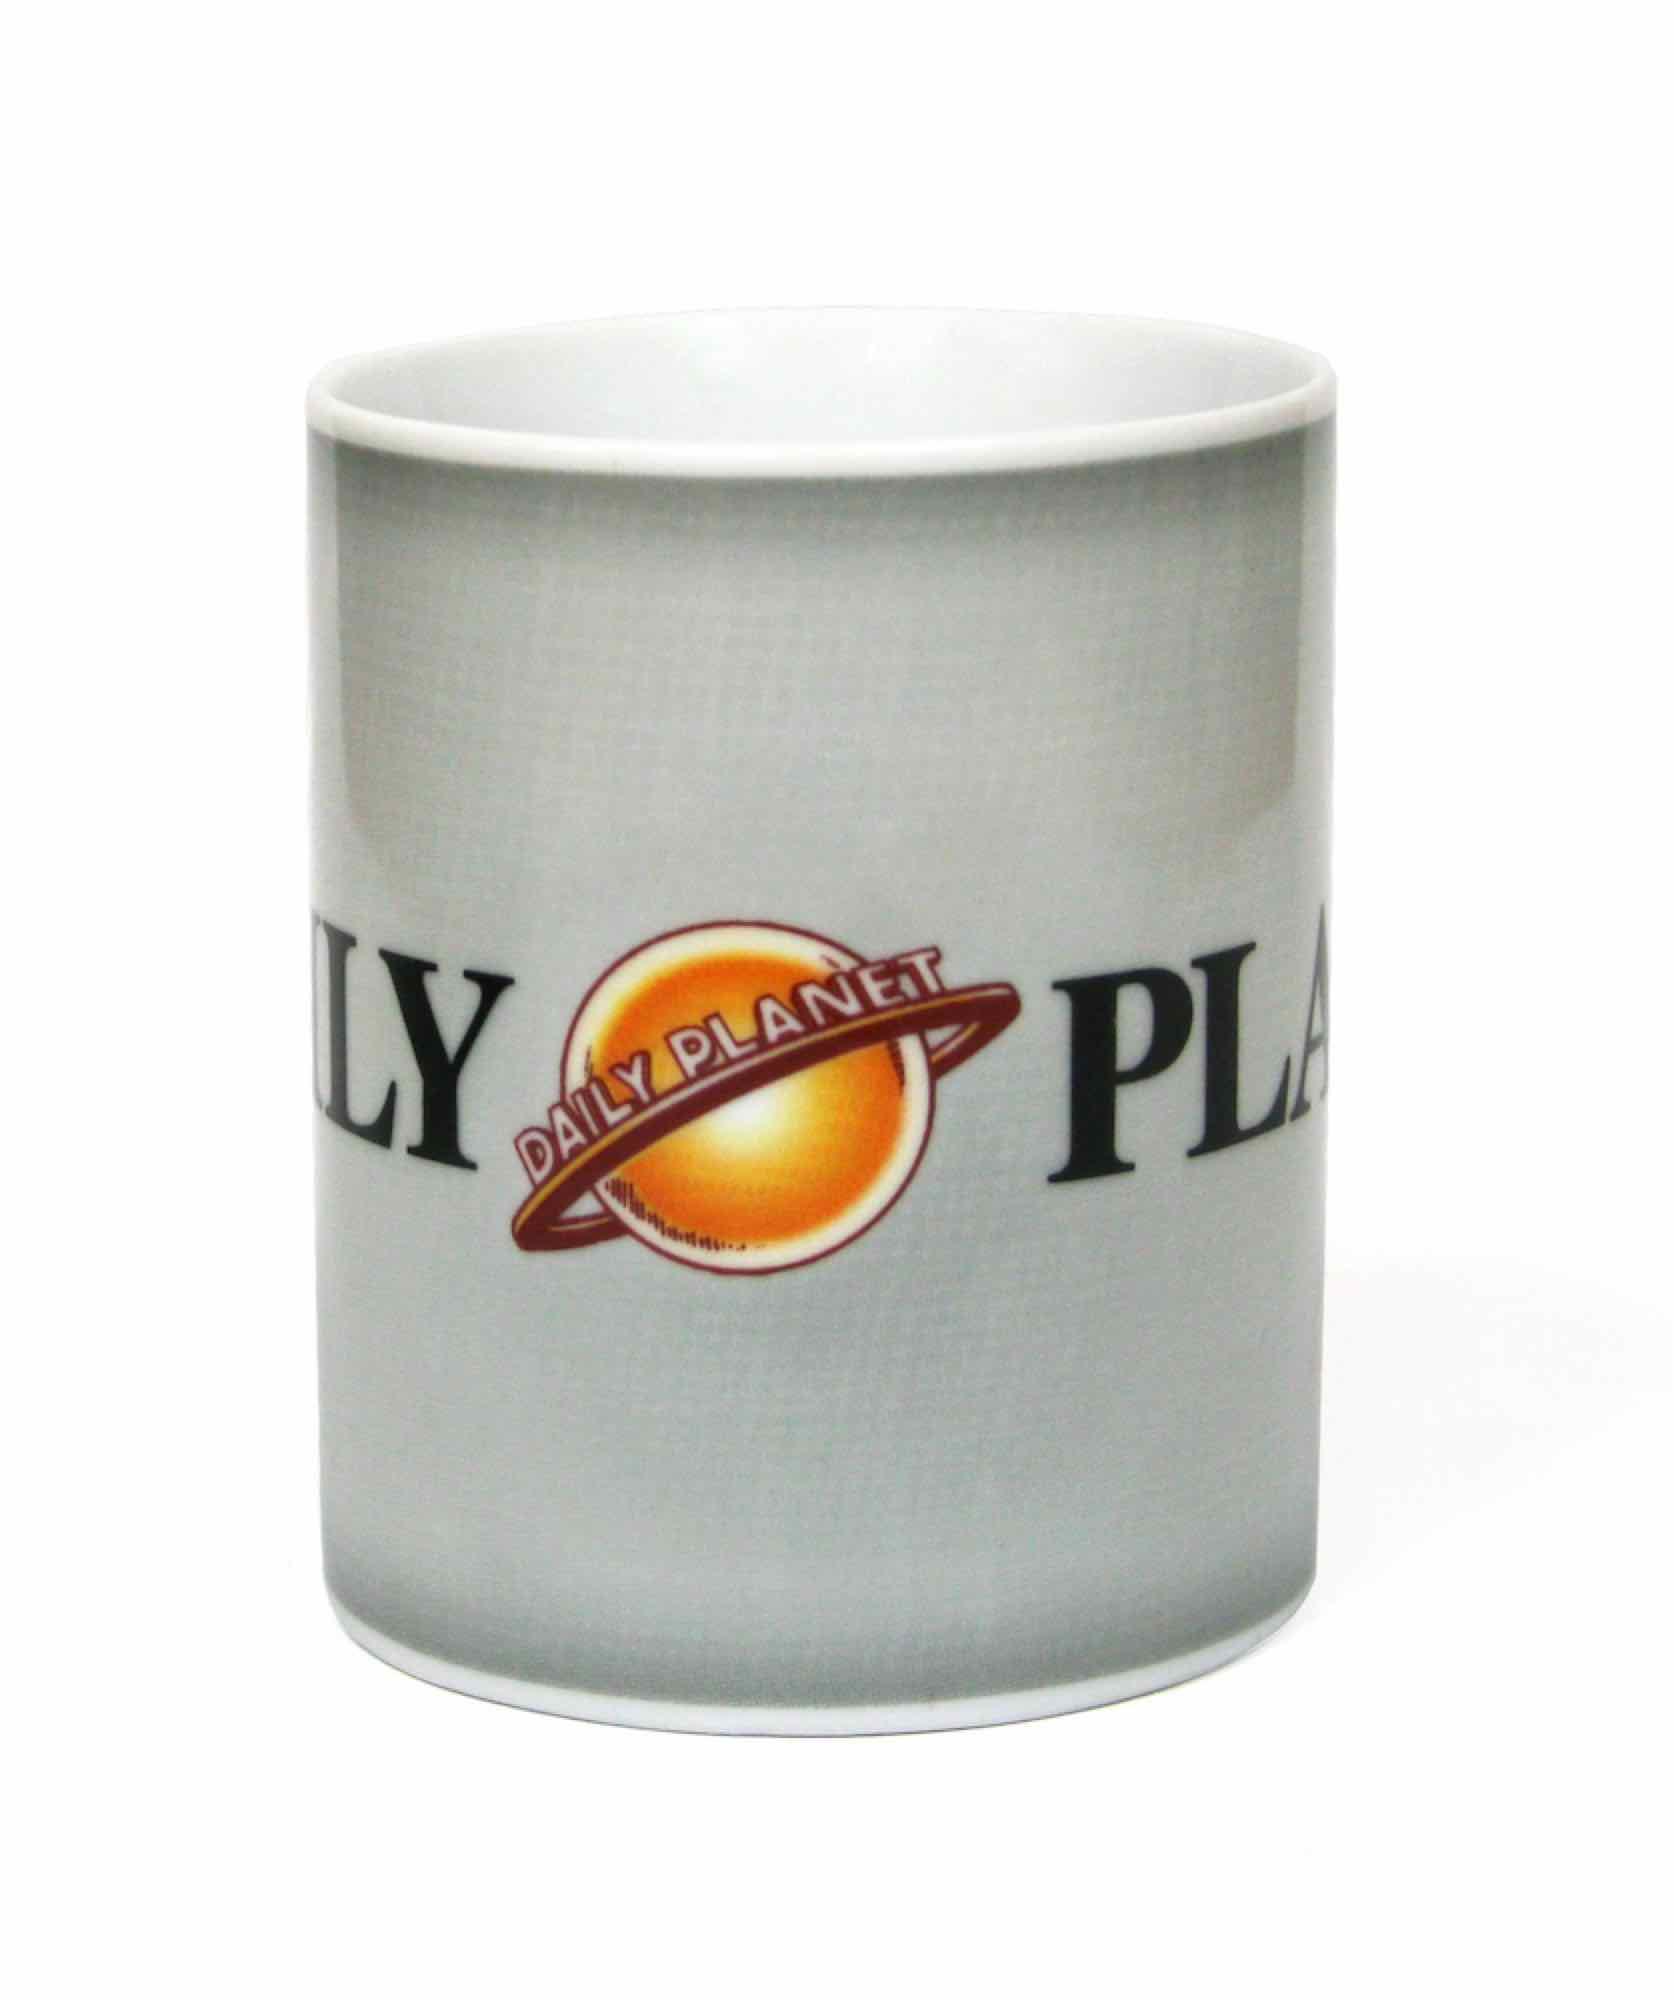 DAILY PLANET TAZA CERAMICA MAN OF STEEL